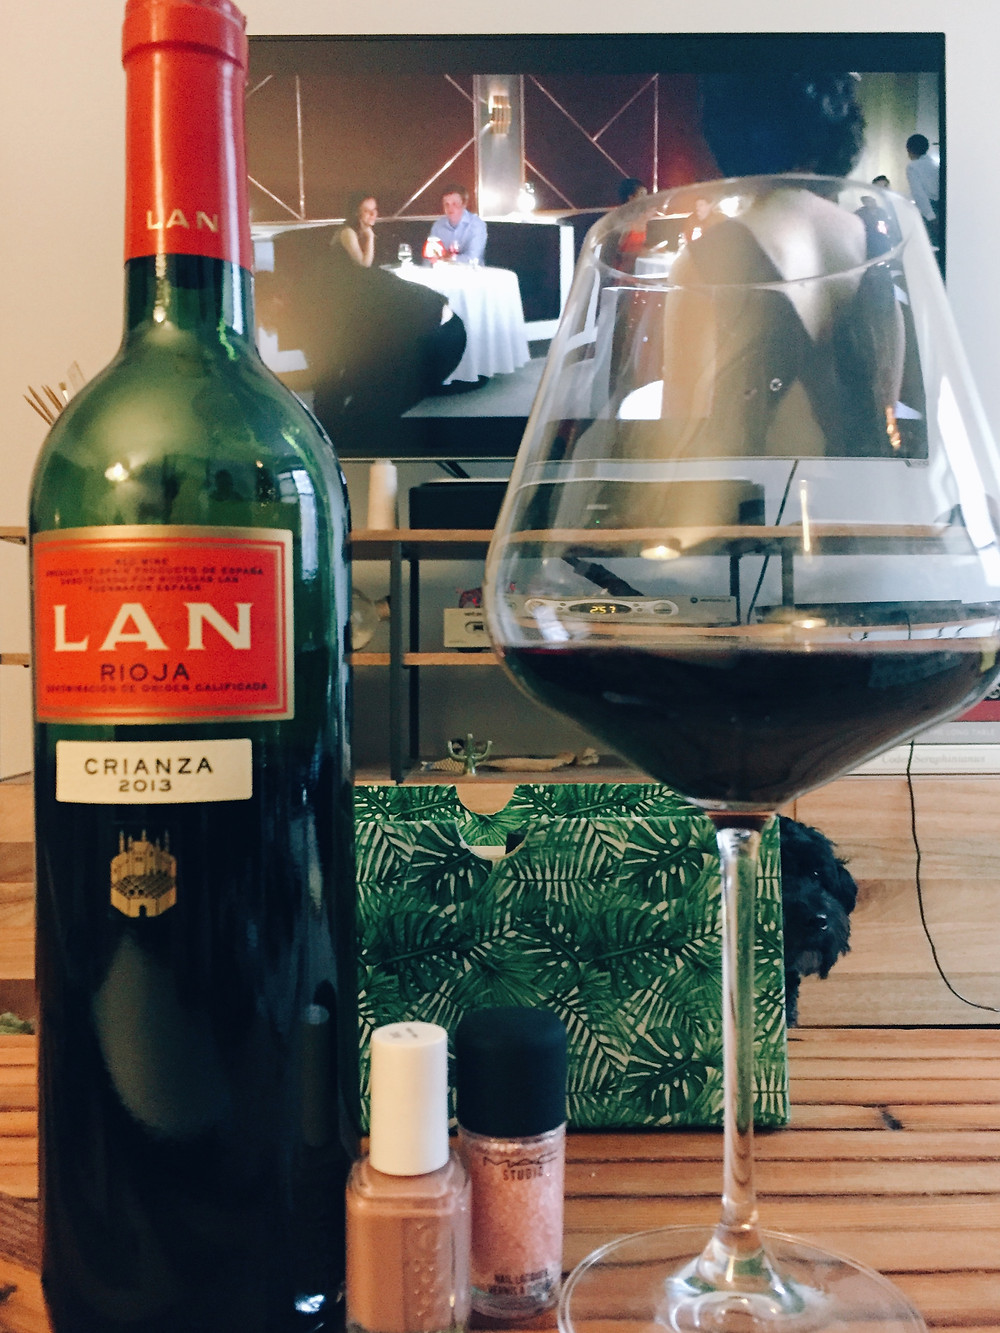 Rioja, Netflix, and a manicure